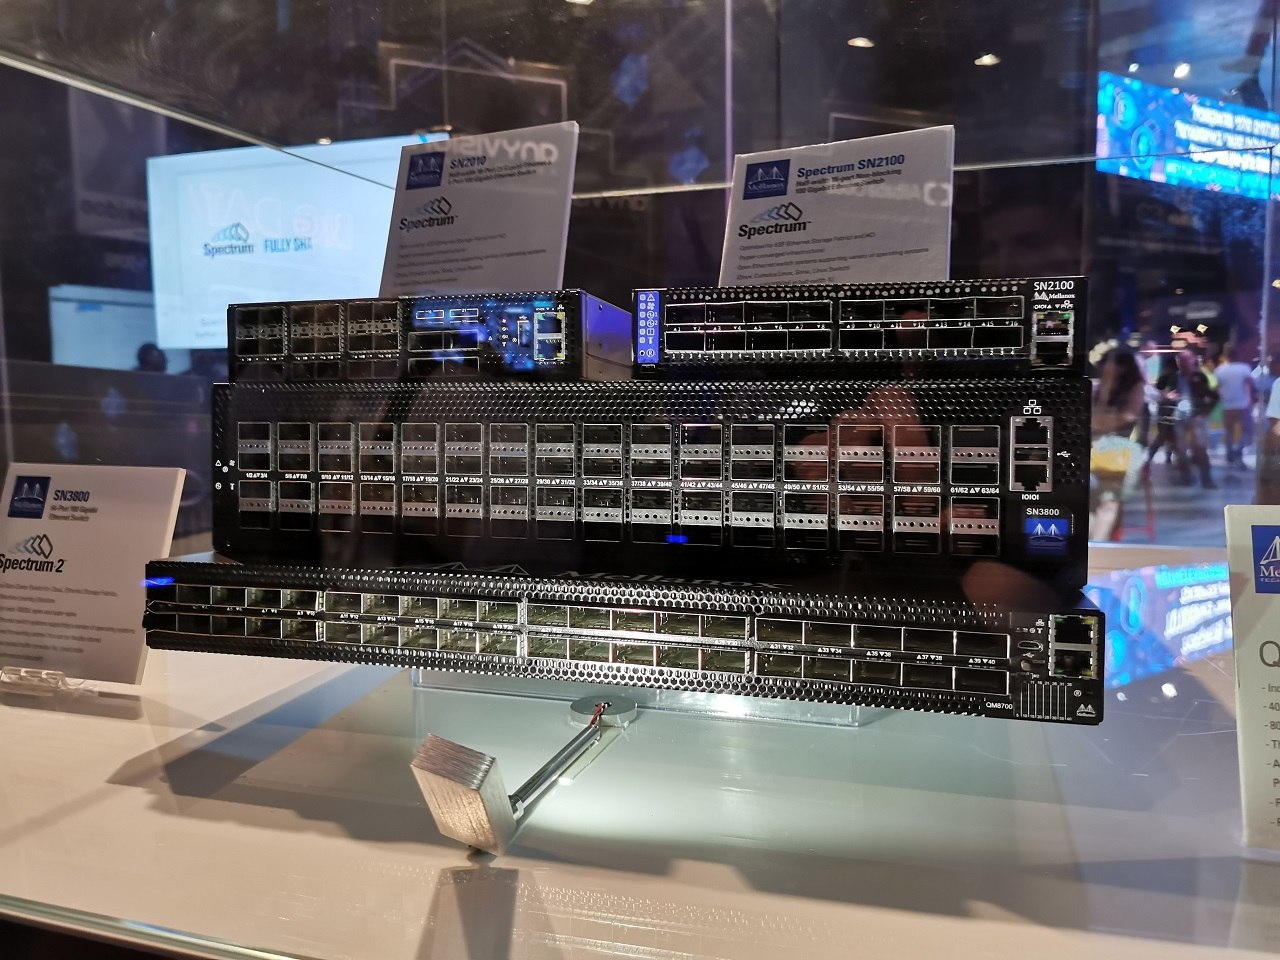 Mellanox switches at bynet expo 2019